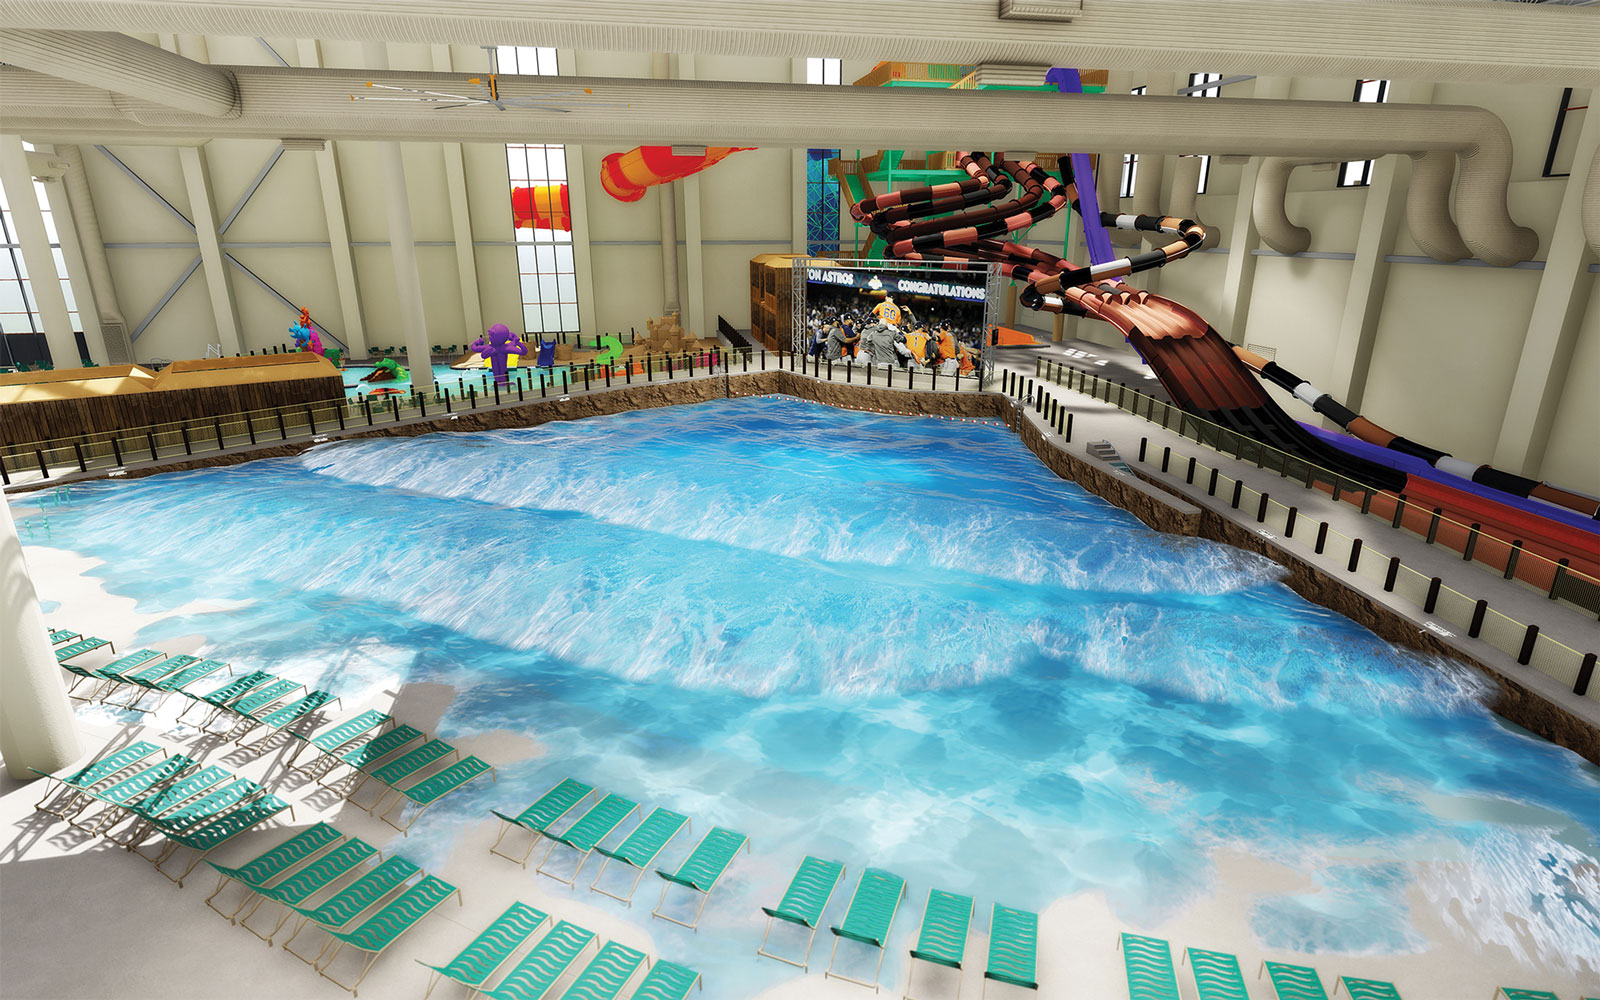 Texas Will Soon Be Home to America's Largest Indoor Water Park